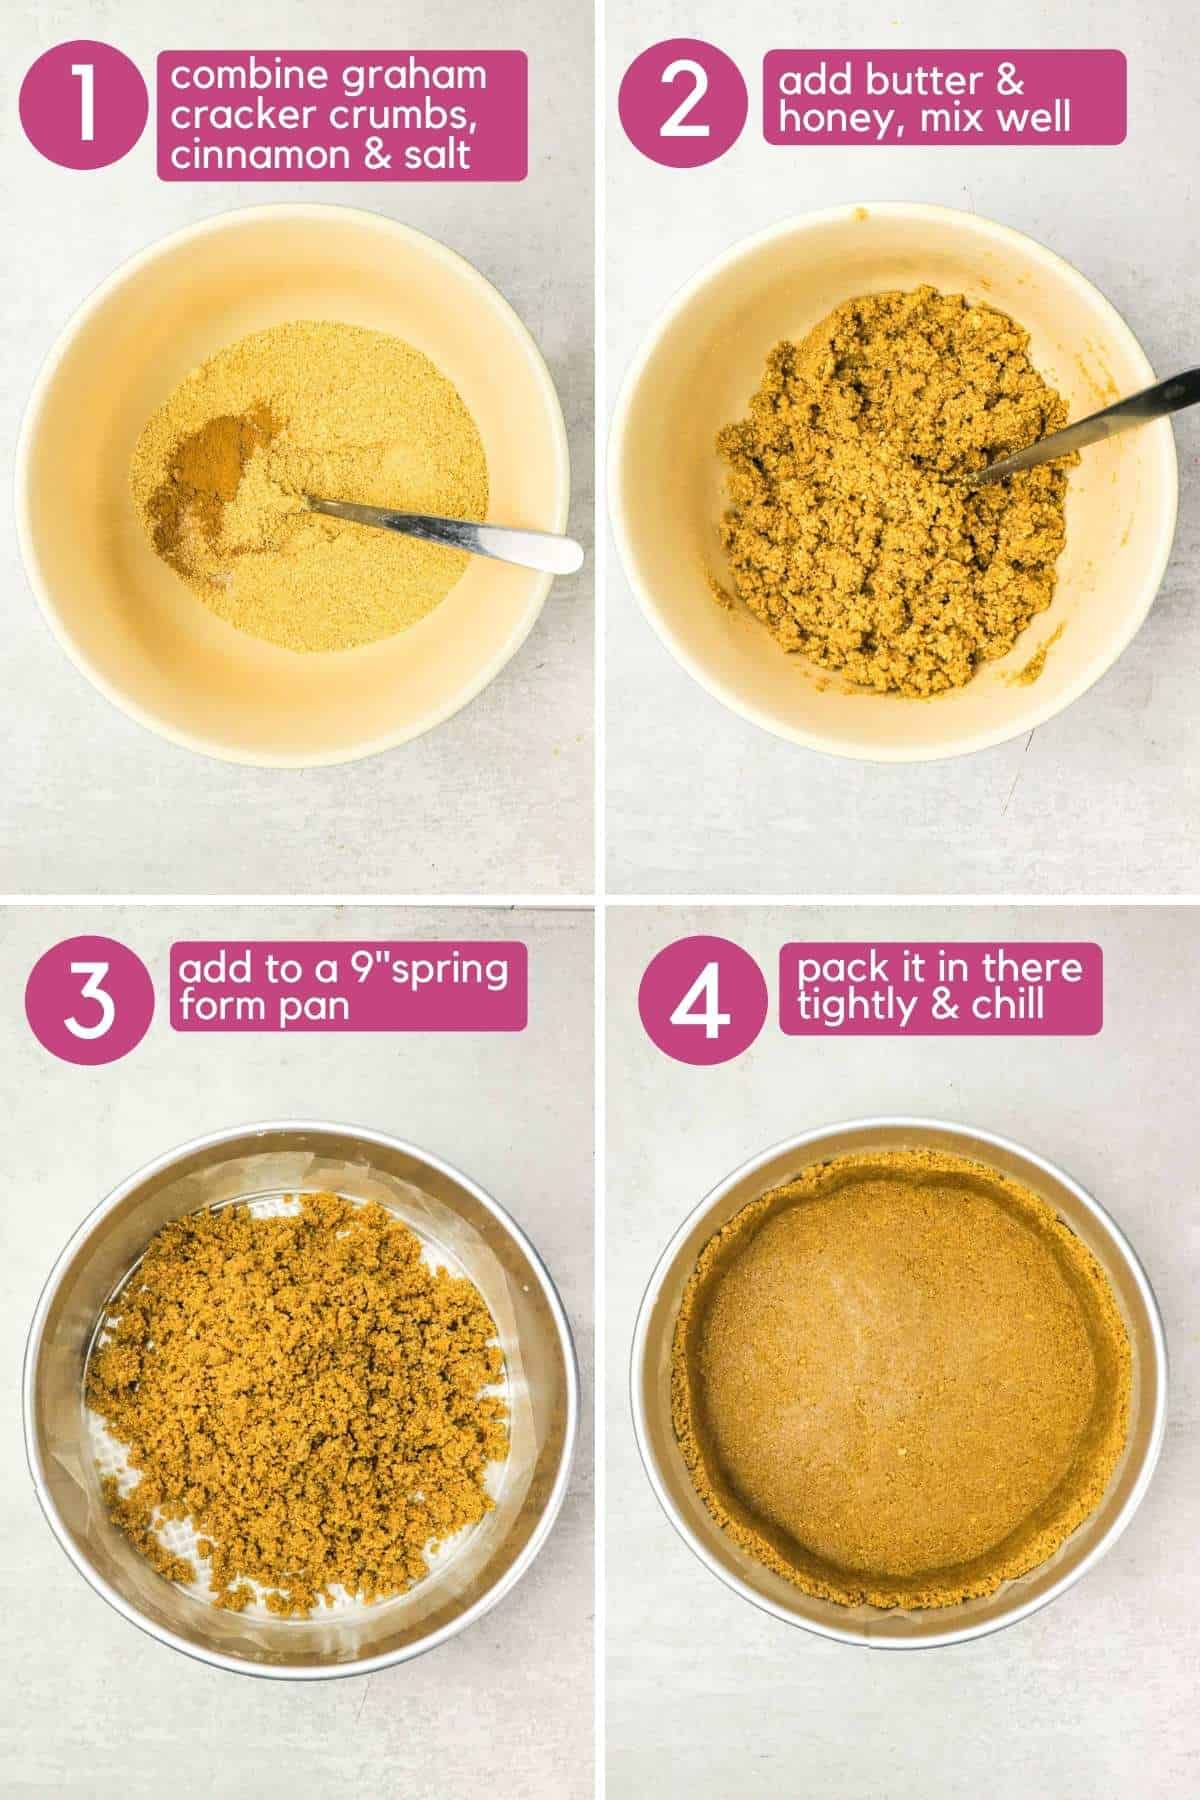 How to make the crust for an eggless cheesecake